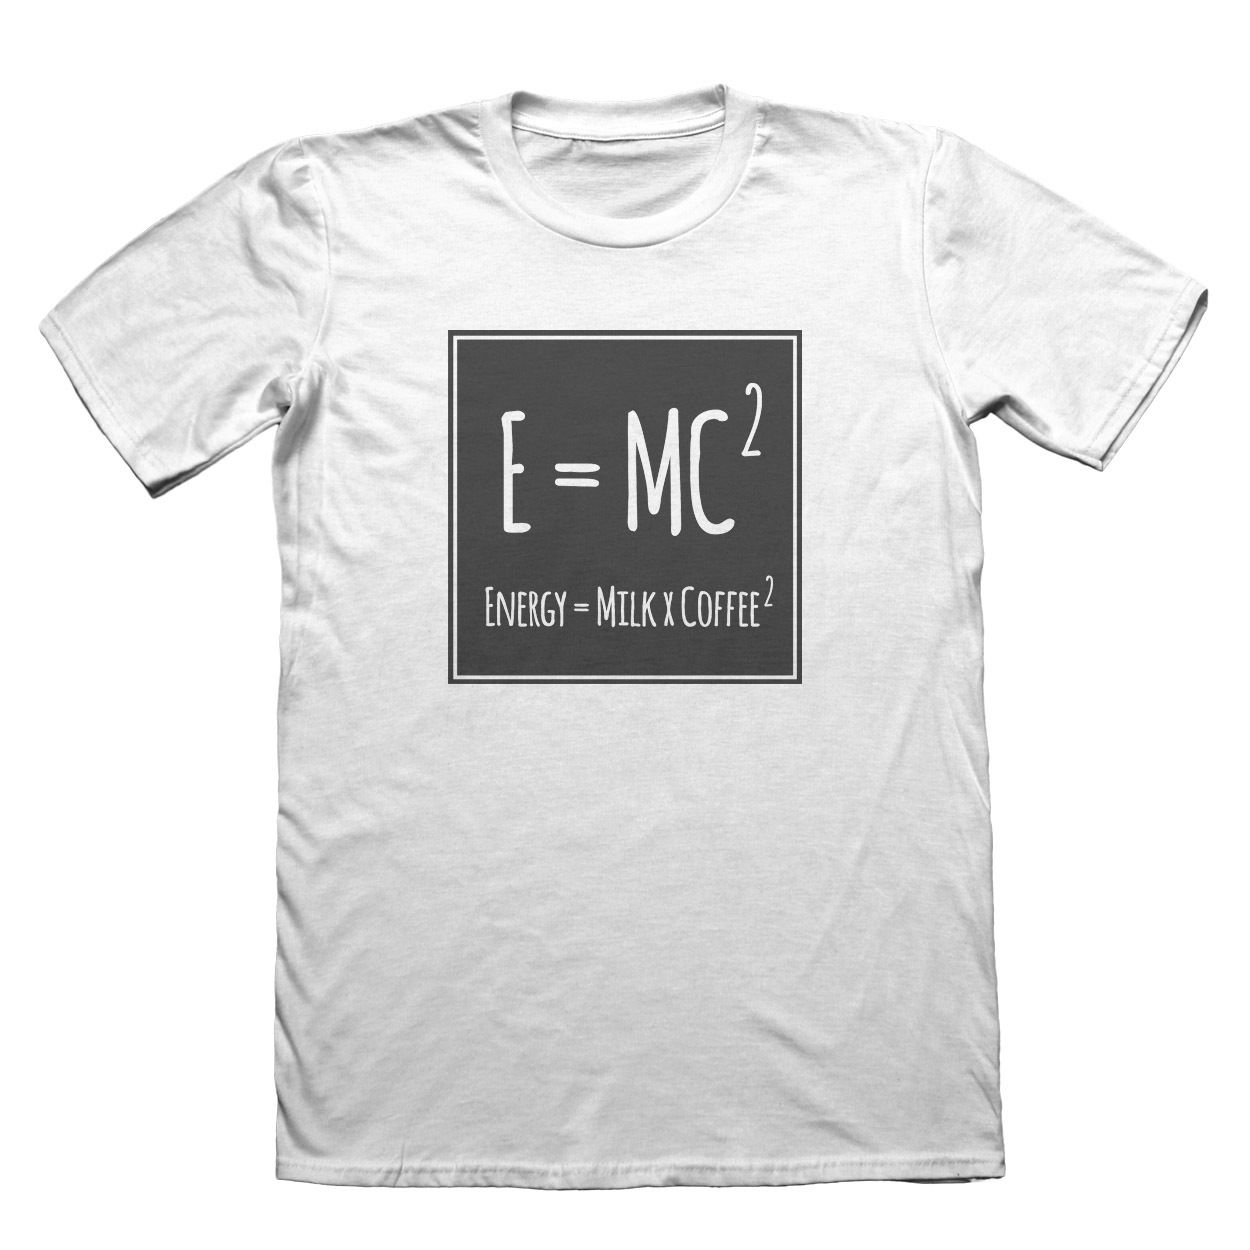 E=MC2 Funny T-Shirt - Mens Fathers Day Christmas Design T Shirts Casual Cool